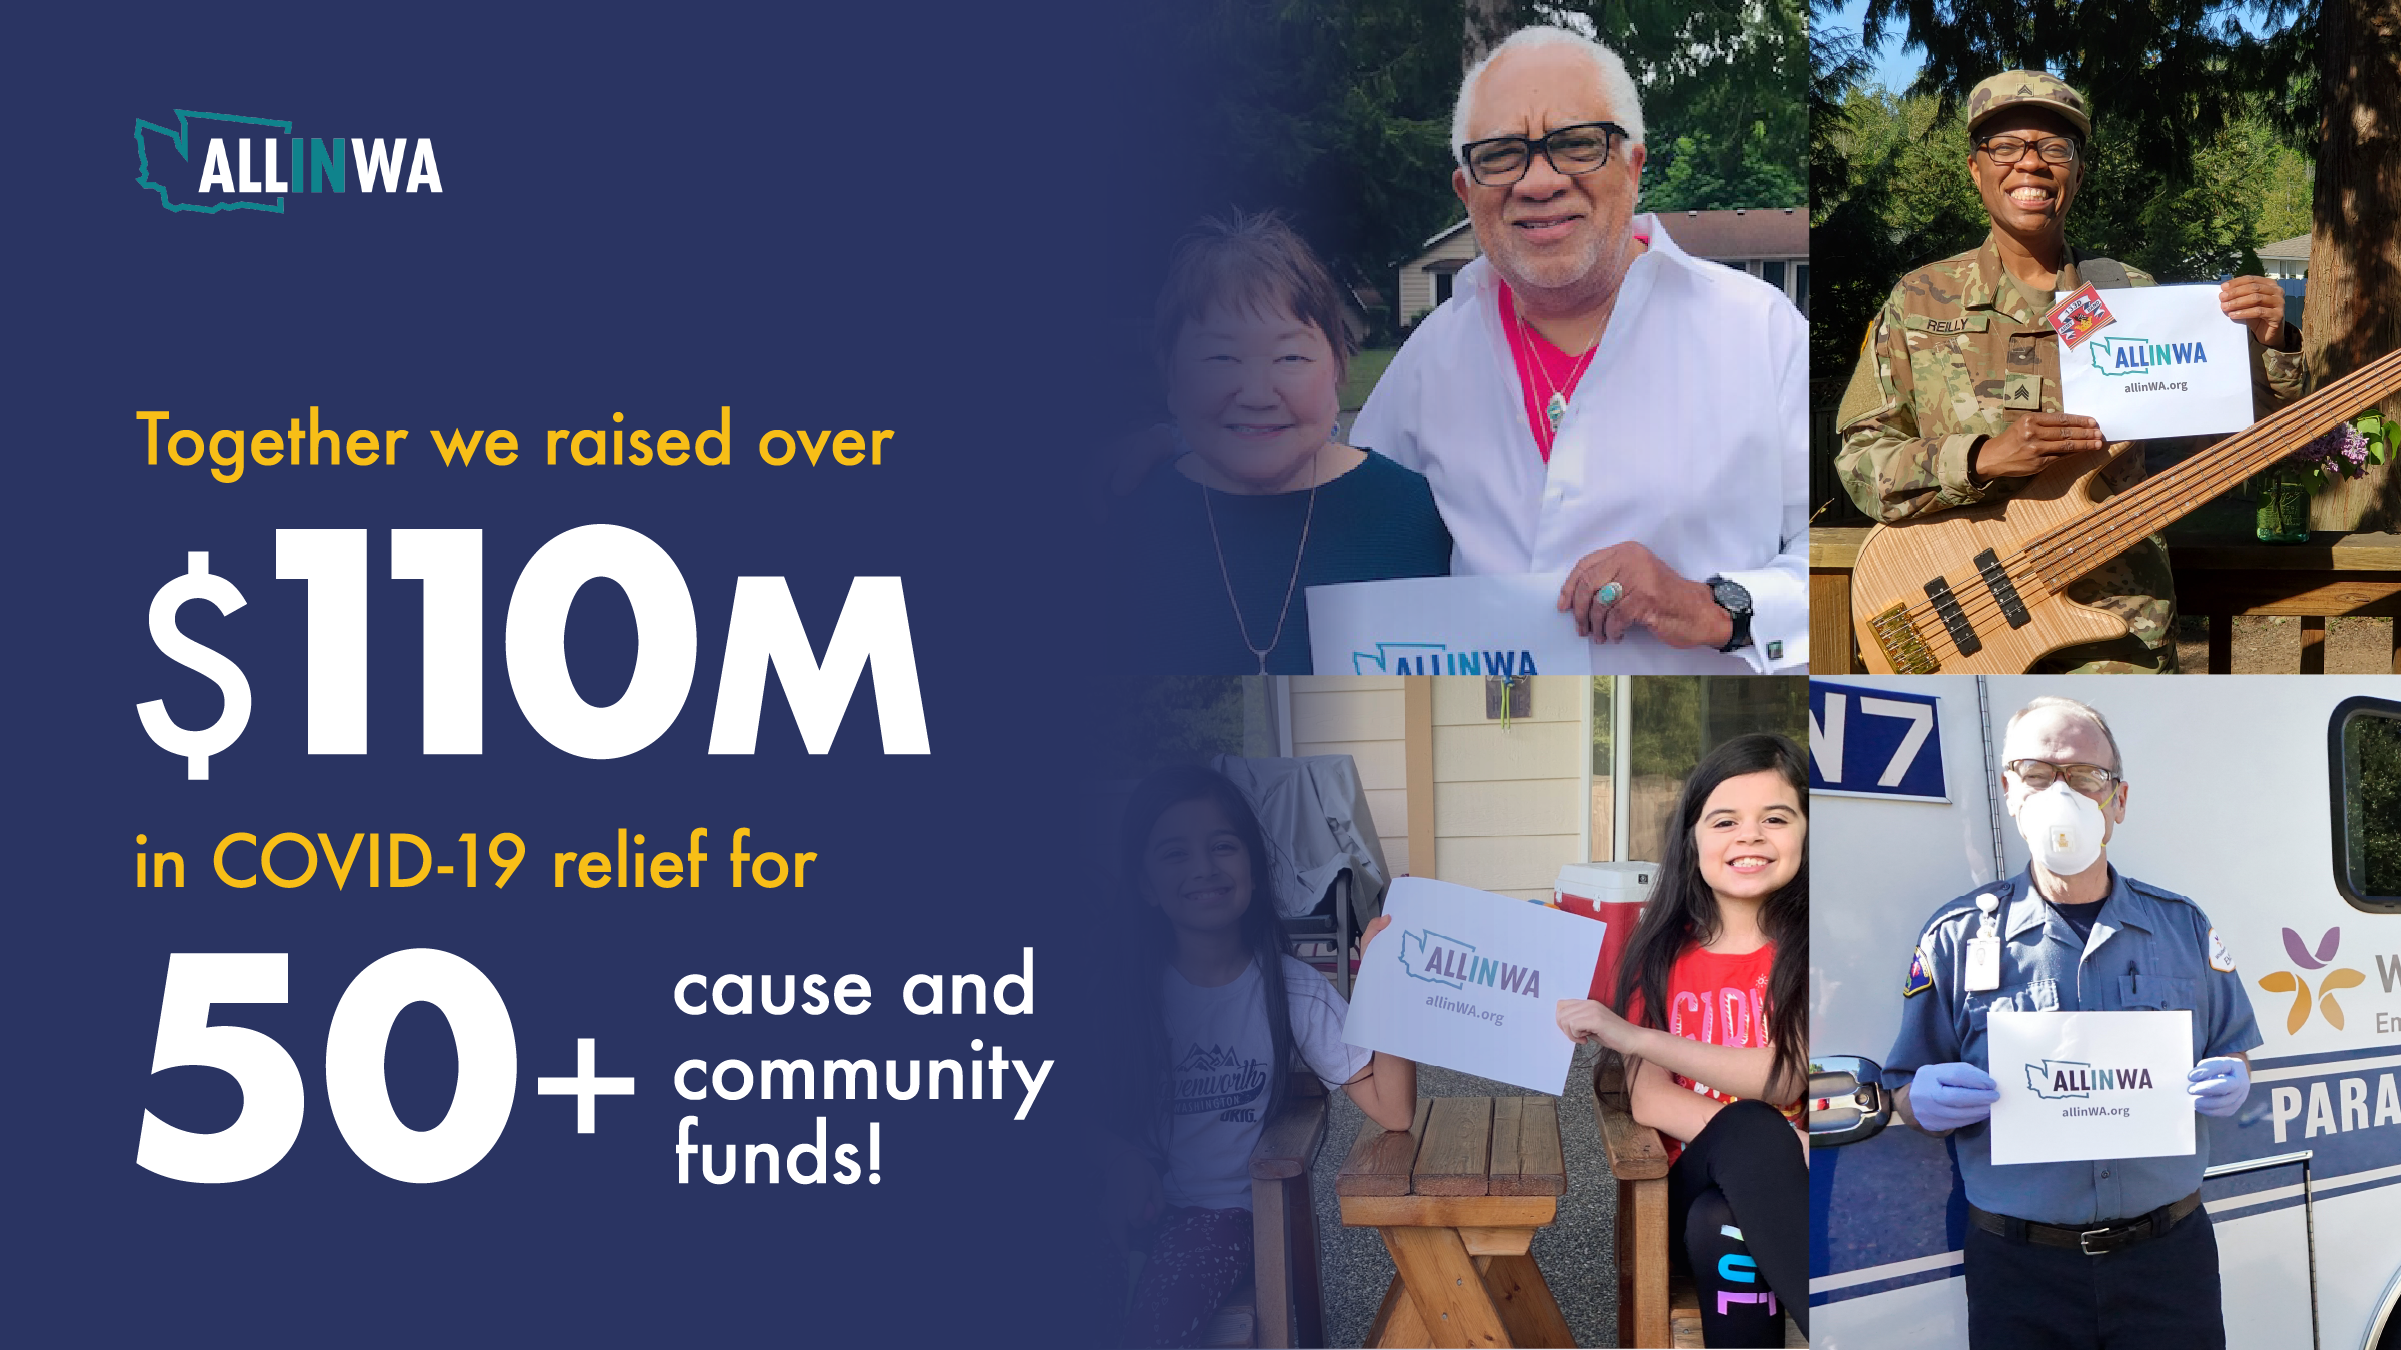 """Bold white text that reads """"Together we raised over $110M in COVID Relief for 50+ cause and community funds"""" on a dark blue gradient that bleeds over a collage of people holding All In Washington Signs."""